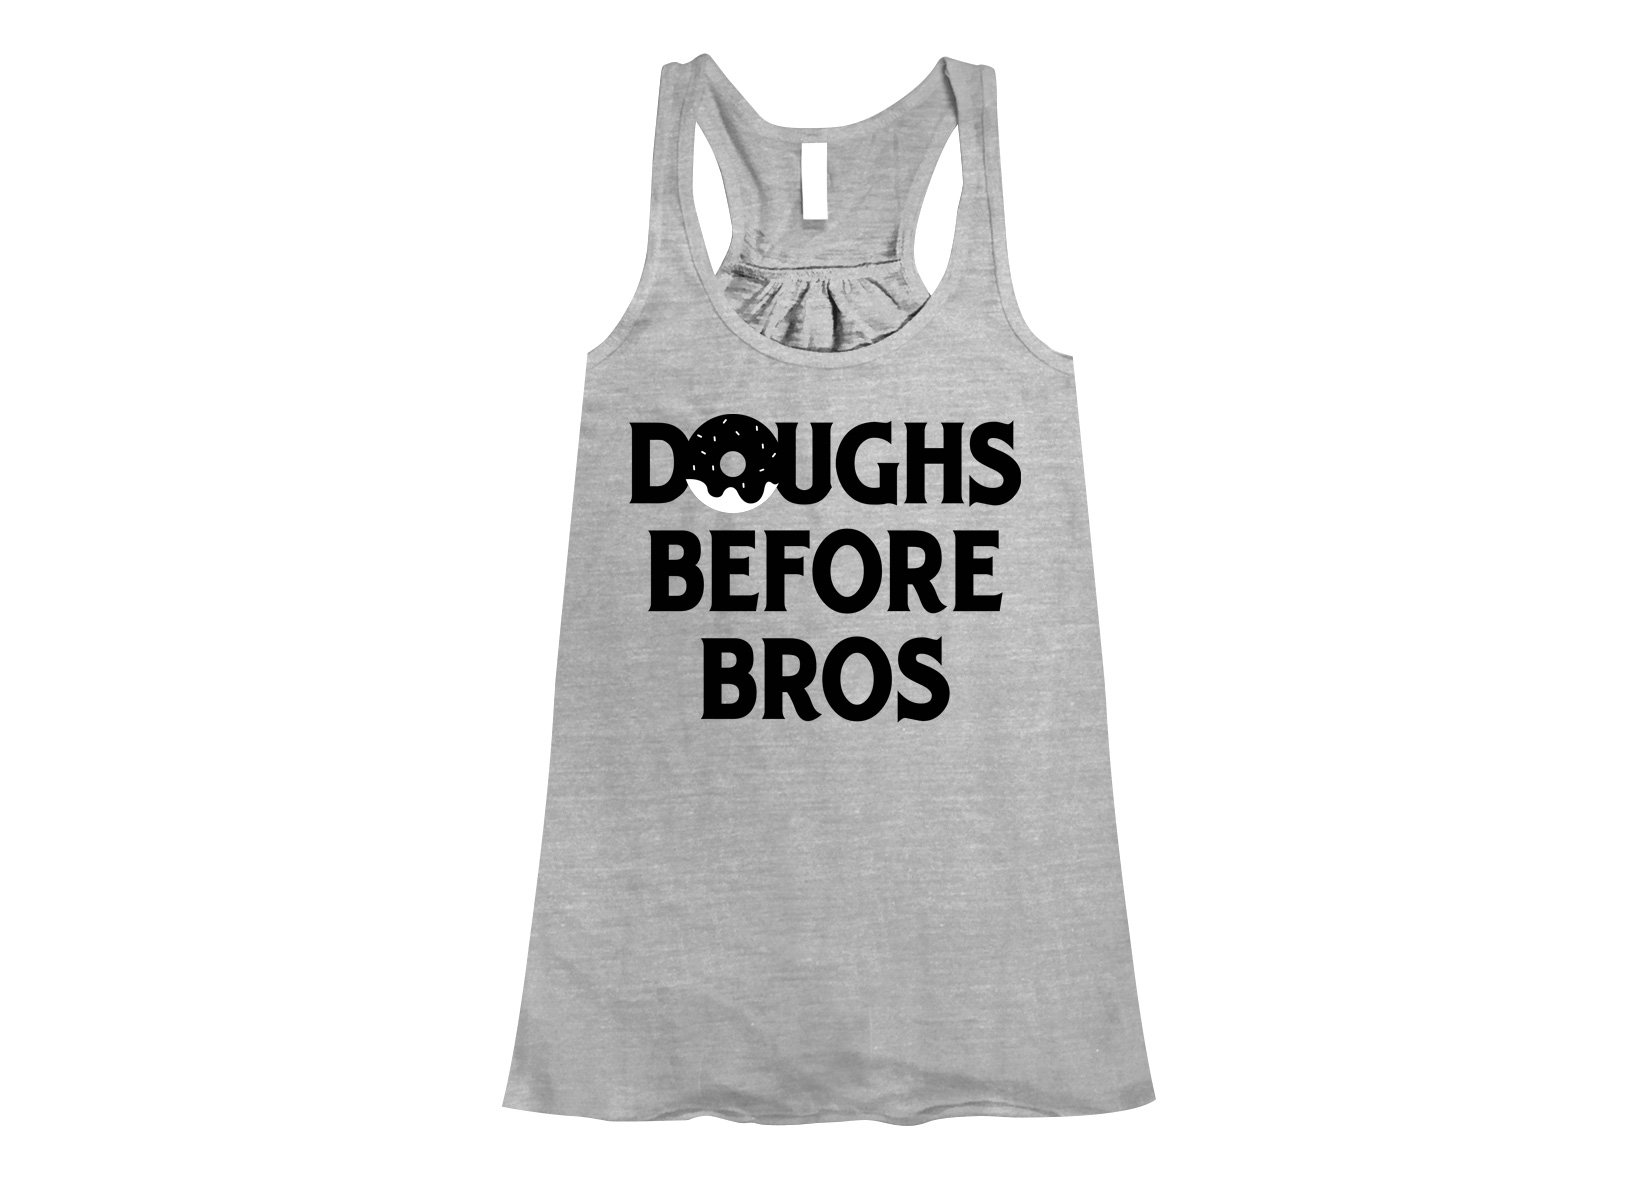 Doughs Before Bros on Womens Tanks T-Shirt